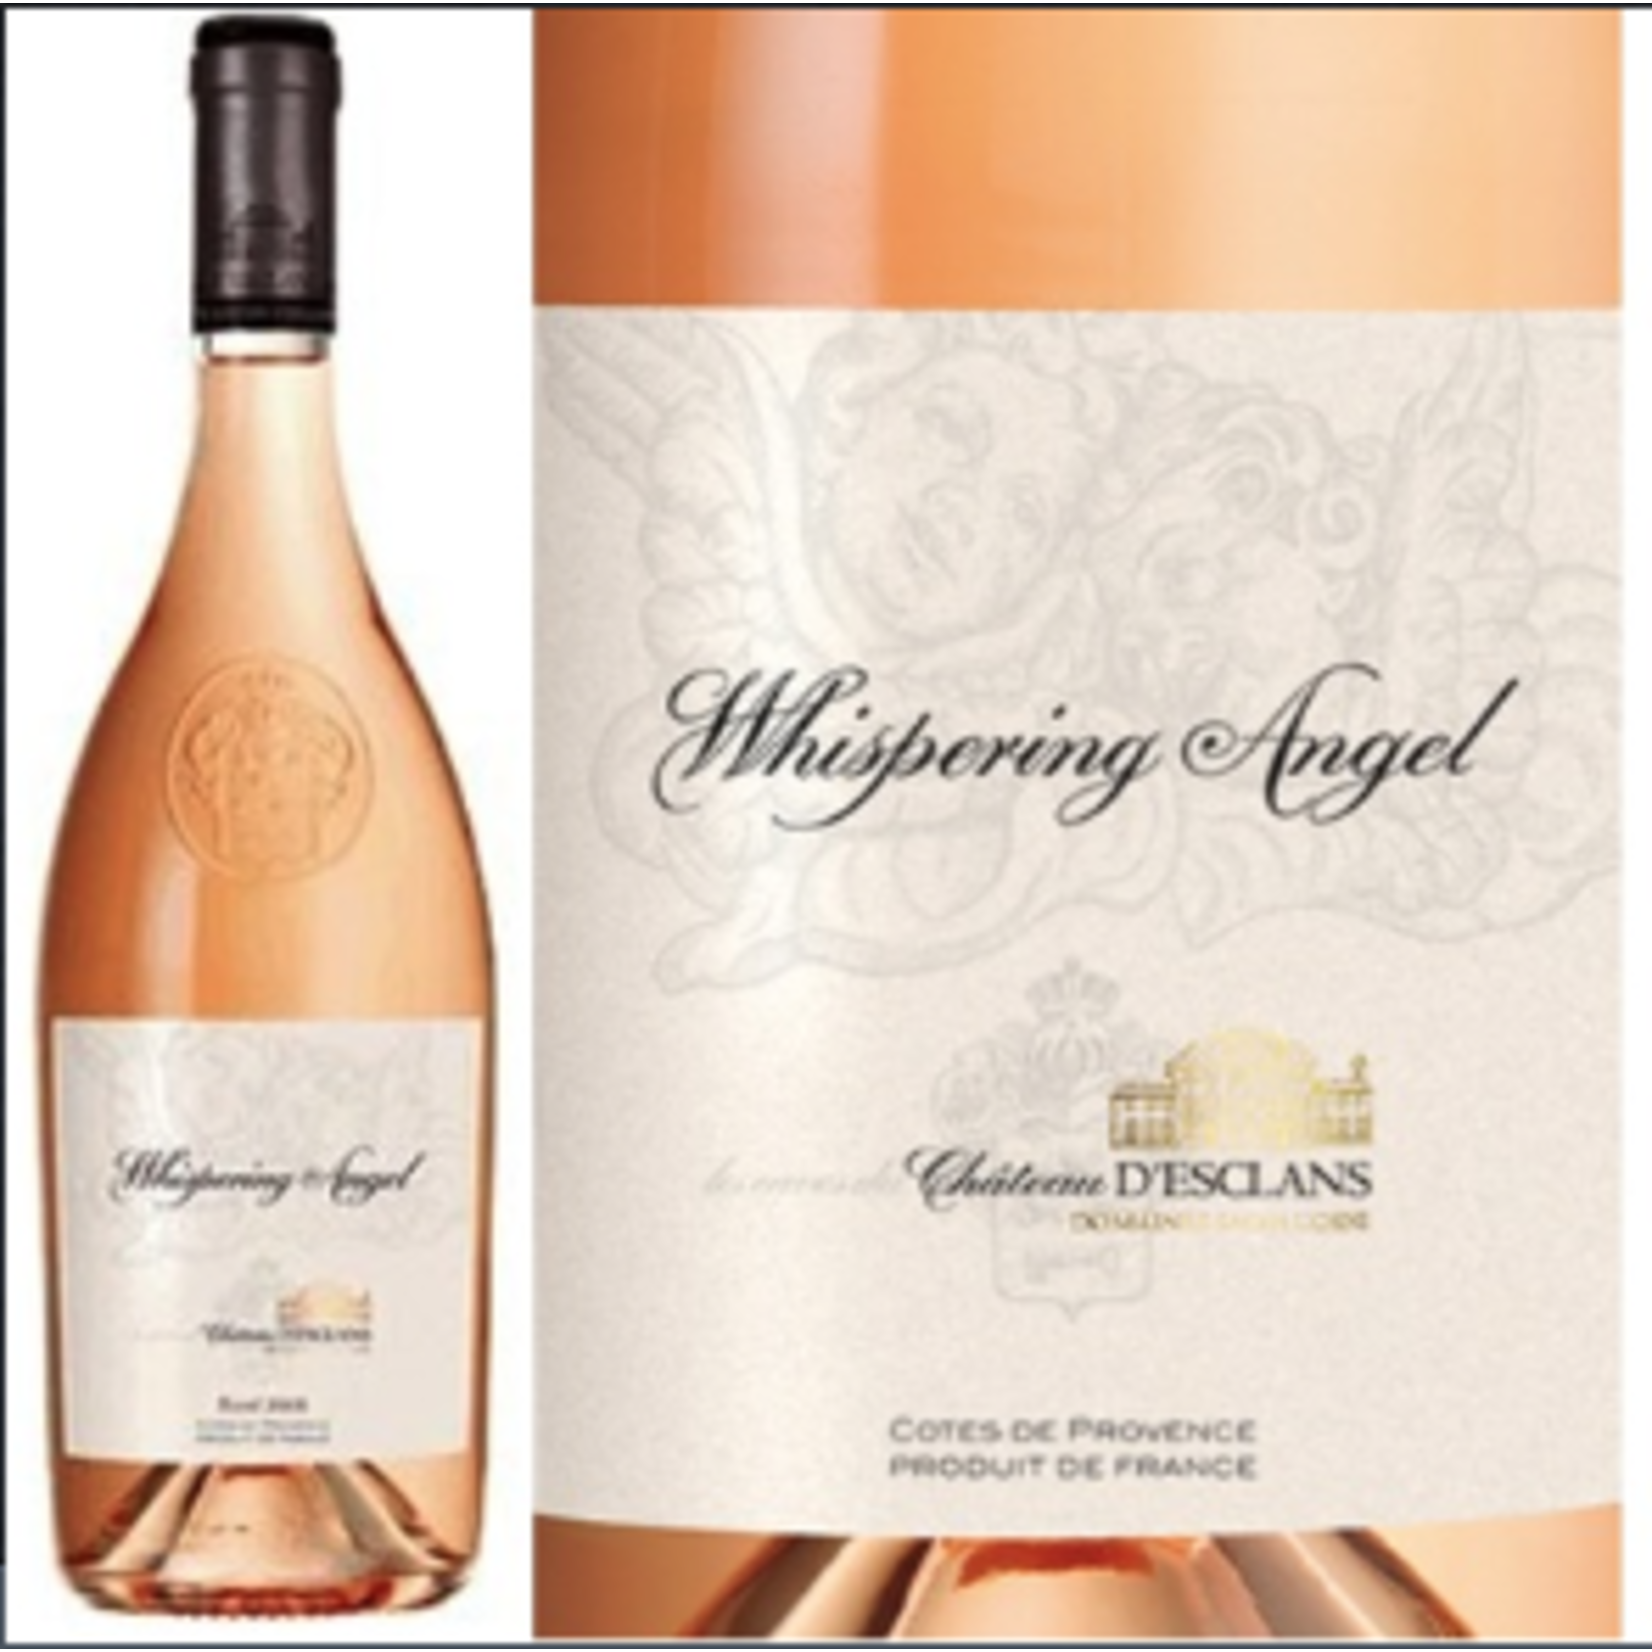 Sacha Lichine Ch D' Esclans Whispering Angel Rose 2020 Provence, France